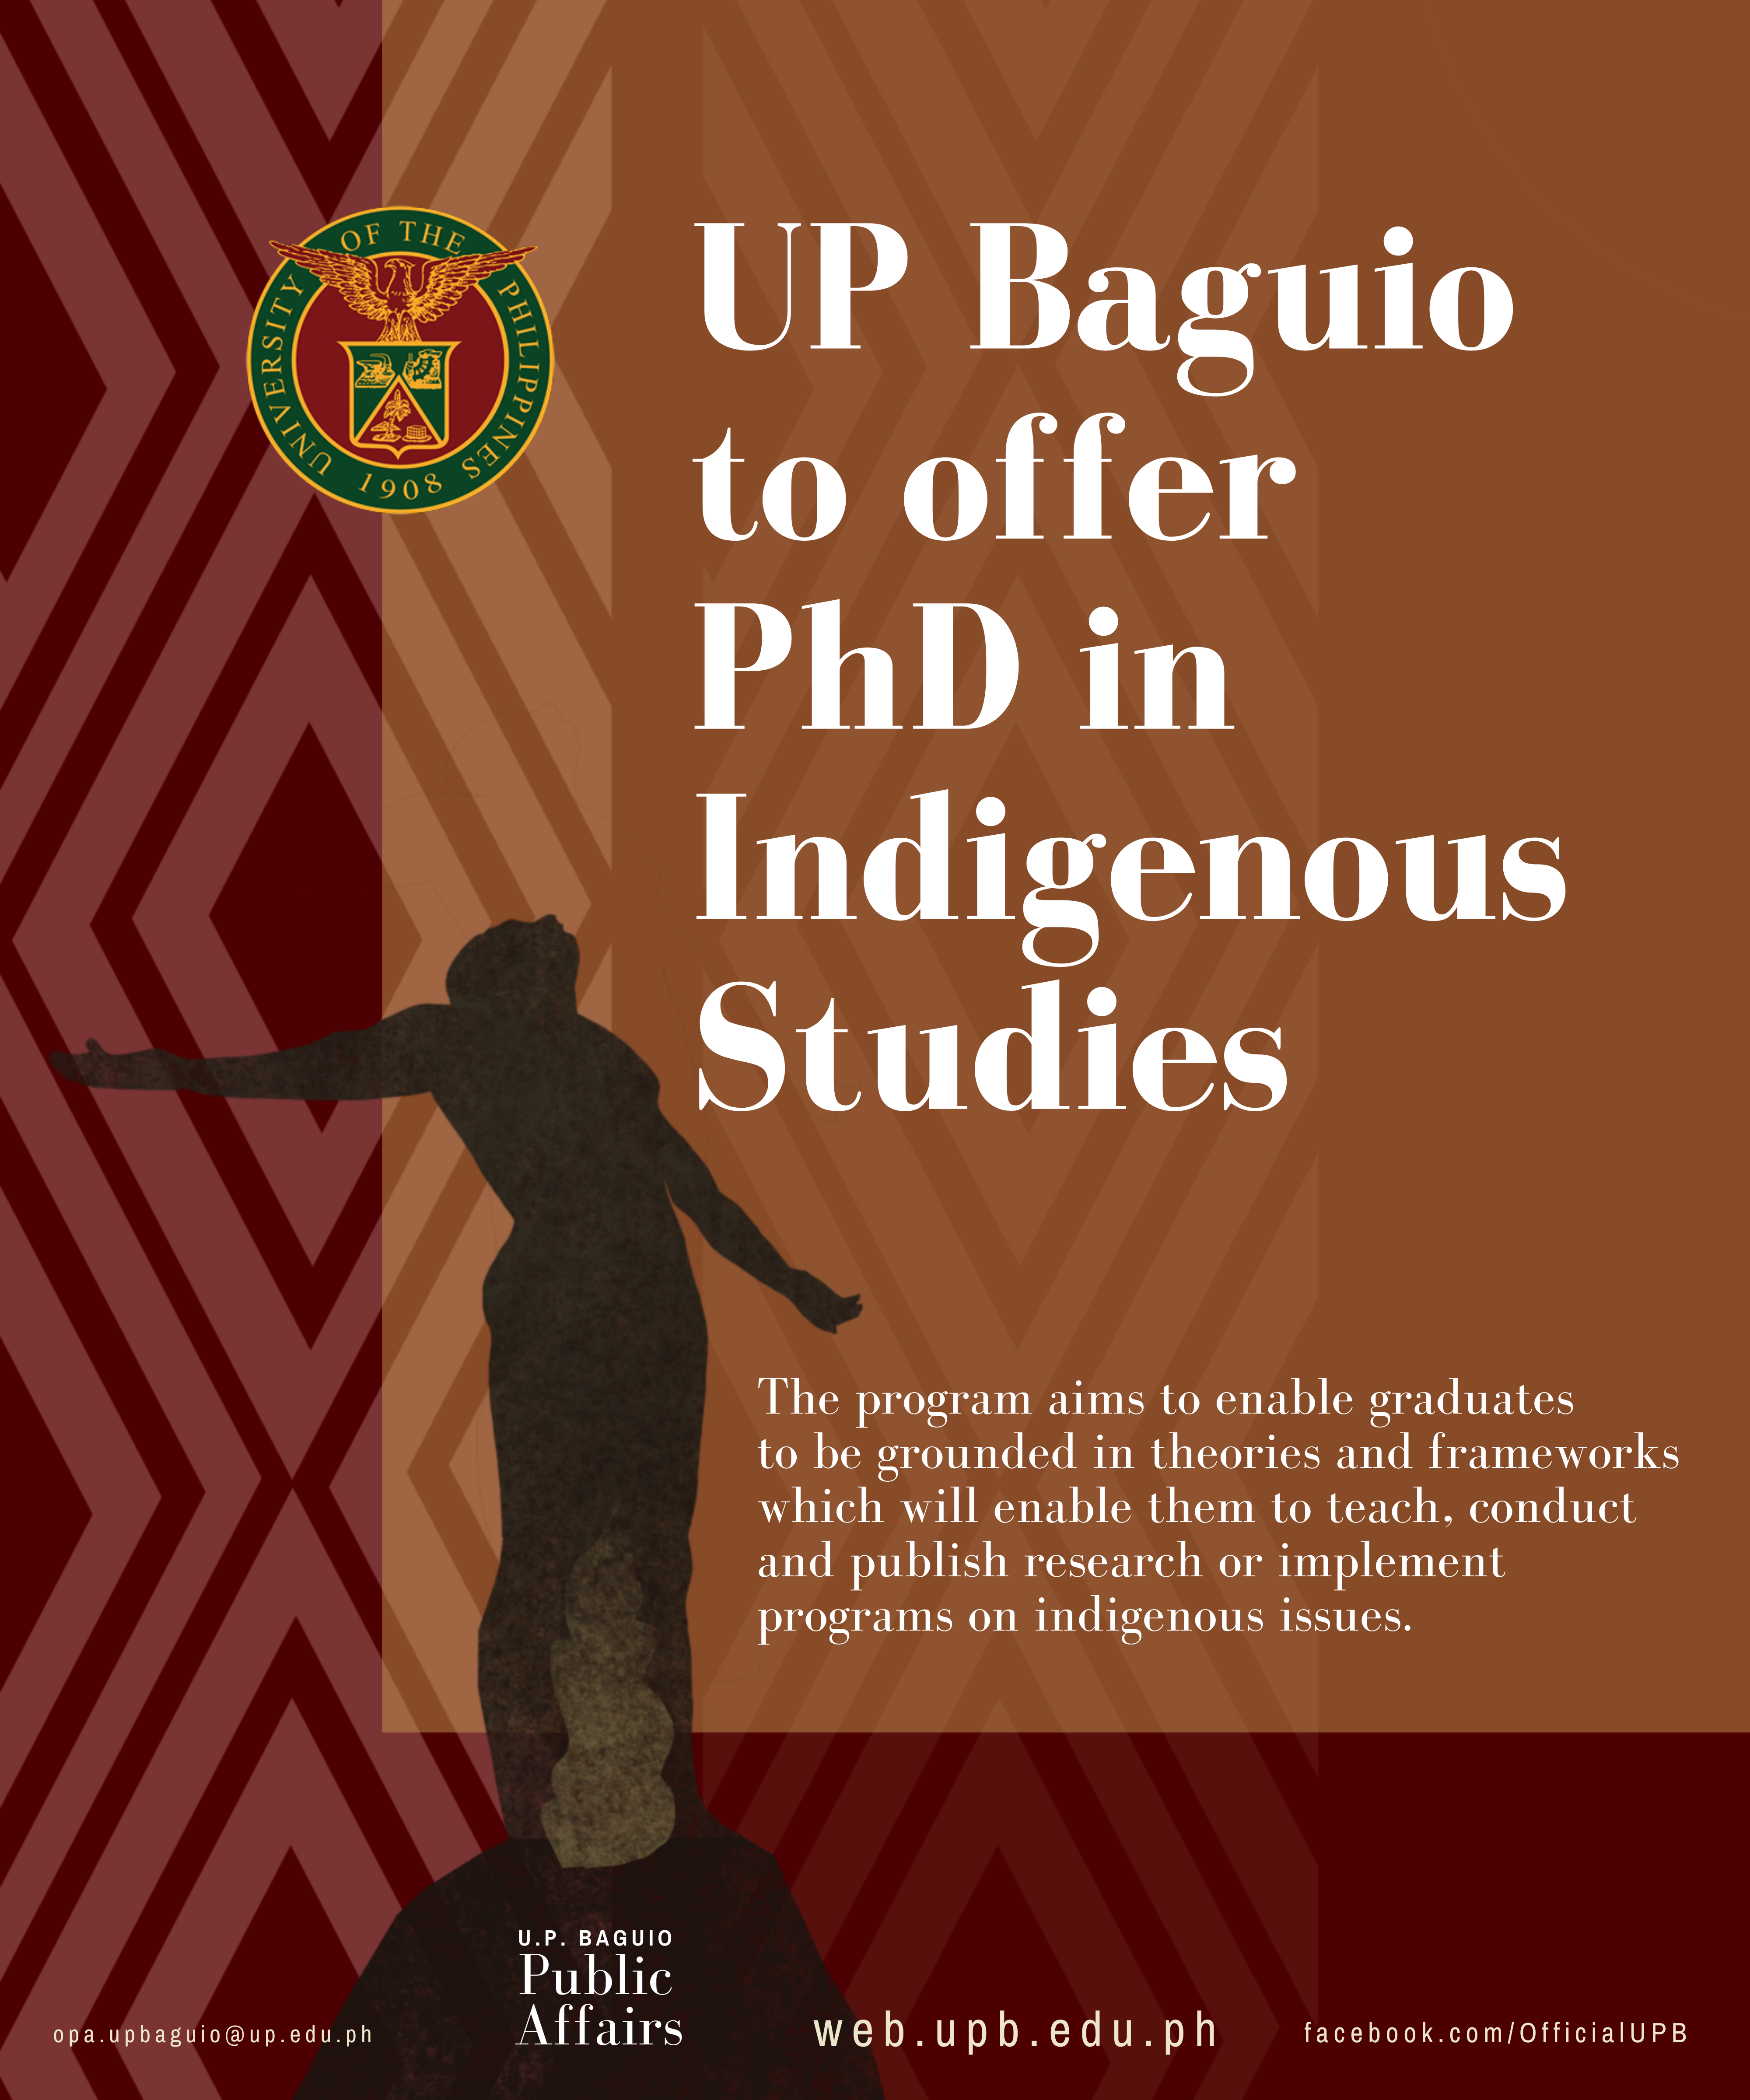 UP Baguio to Offer PhD in Indigenous Studies